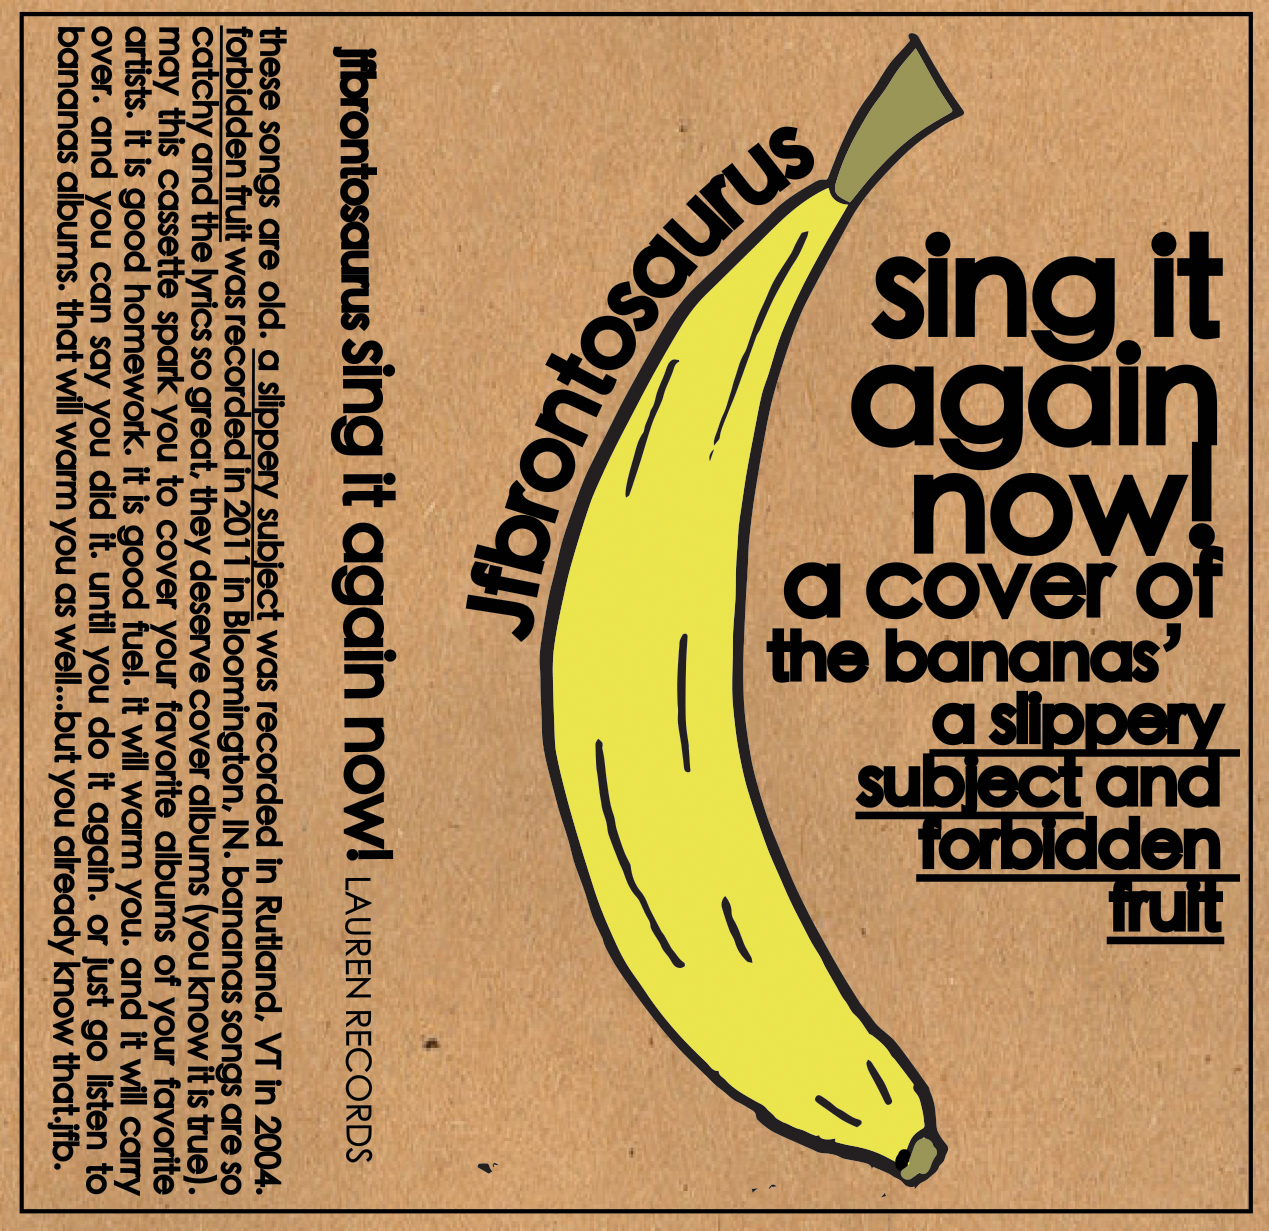 Jfbrontosaurus - Sing It Again Now! (A Cover of the Bananas'